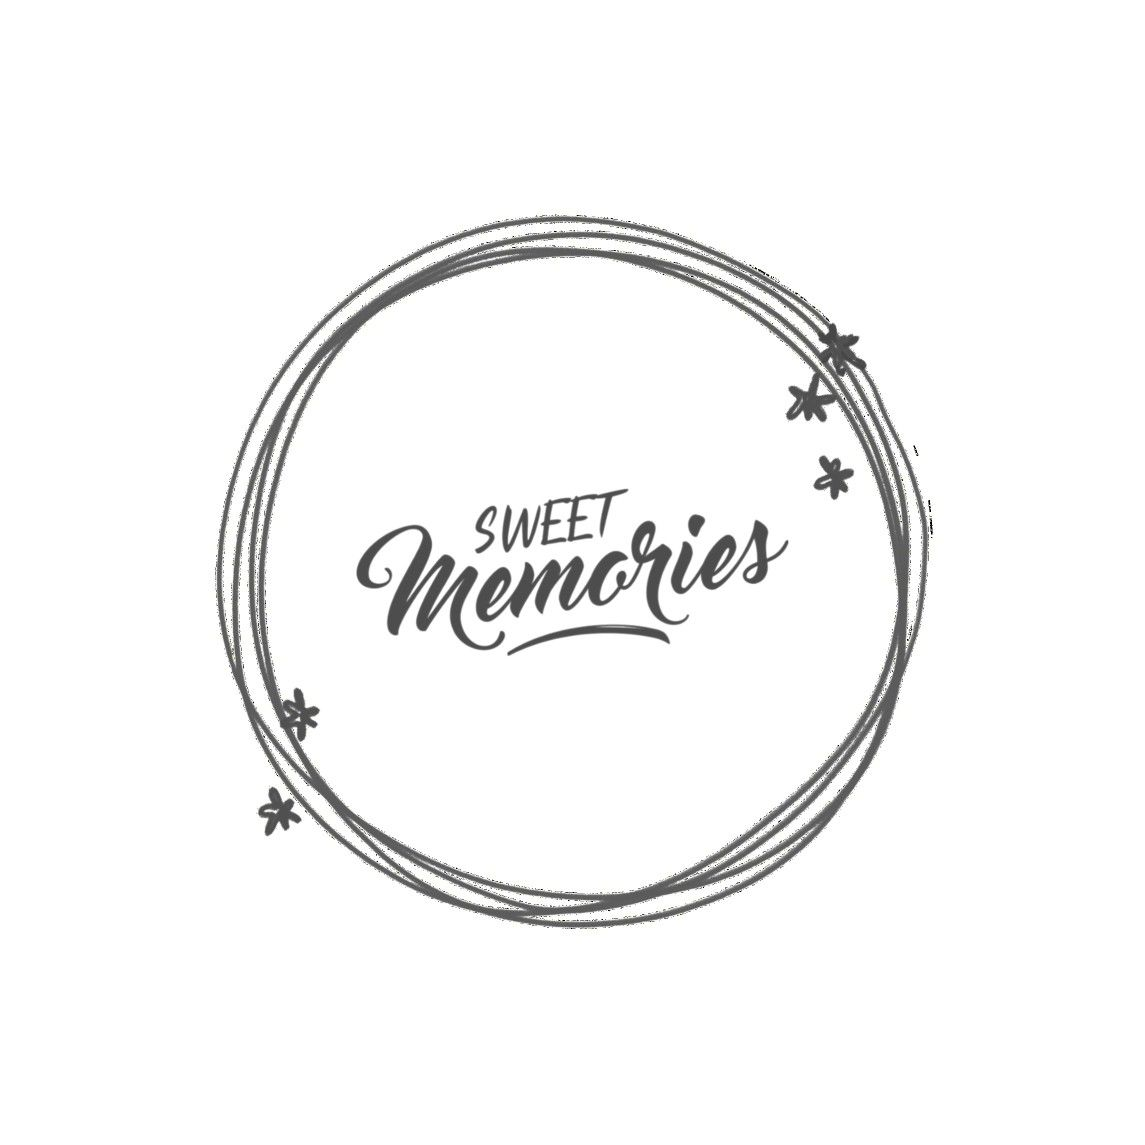 Memories Highlight Cover In 2020 Memories Black Aesthetic Instagram Icons